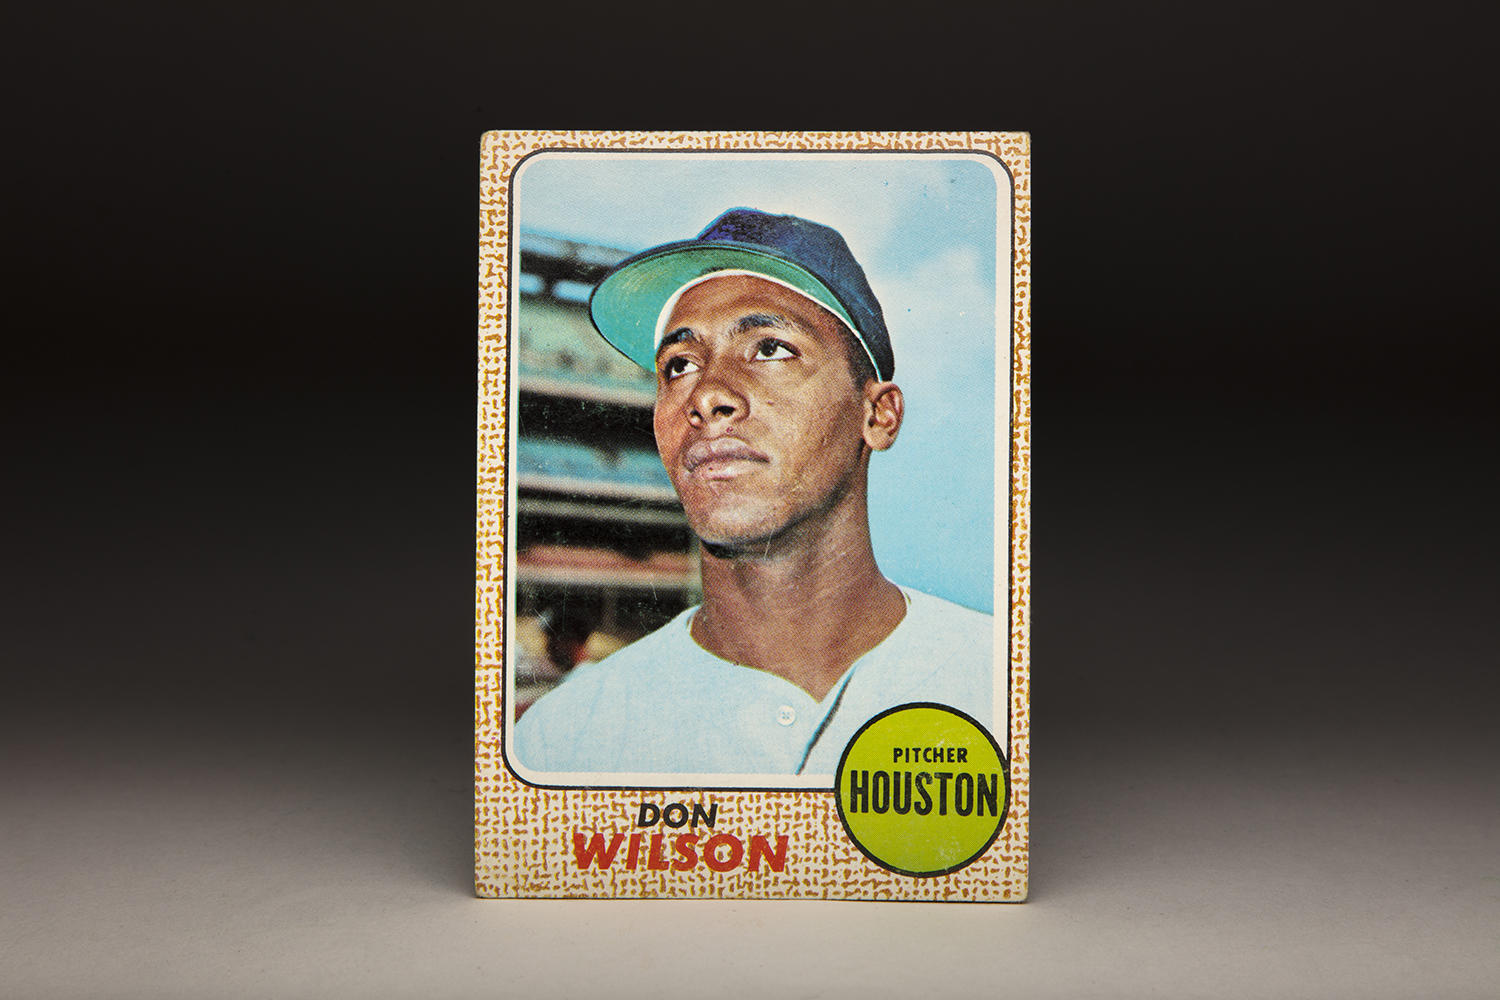 When Don Wilson's 1968 Topps card was taken, he was only 22-years old, with the promise of a long career. (By Photographer Milo Stewart Jr./National Baseball Hall of Fame and Museum)